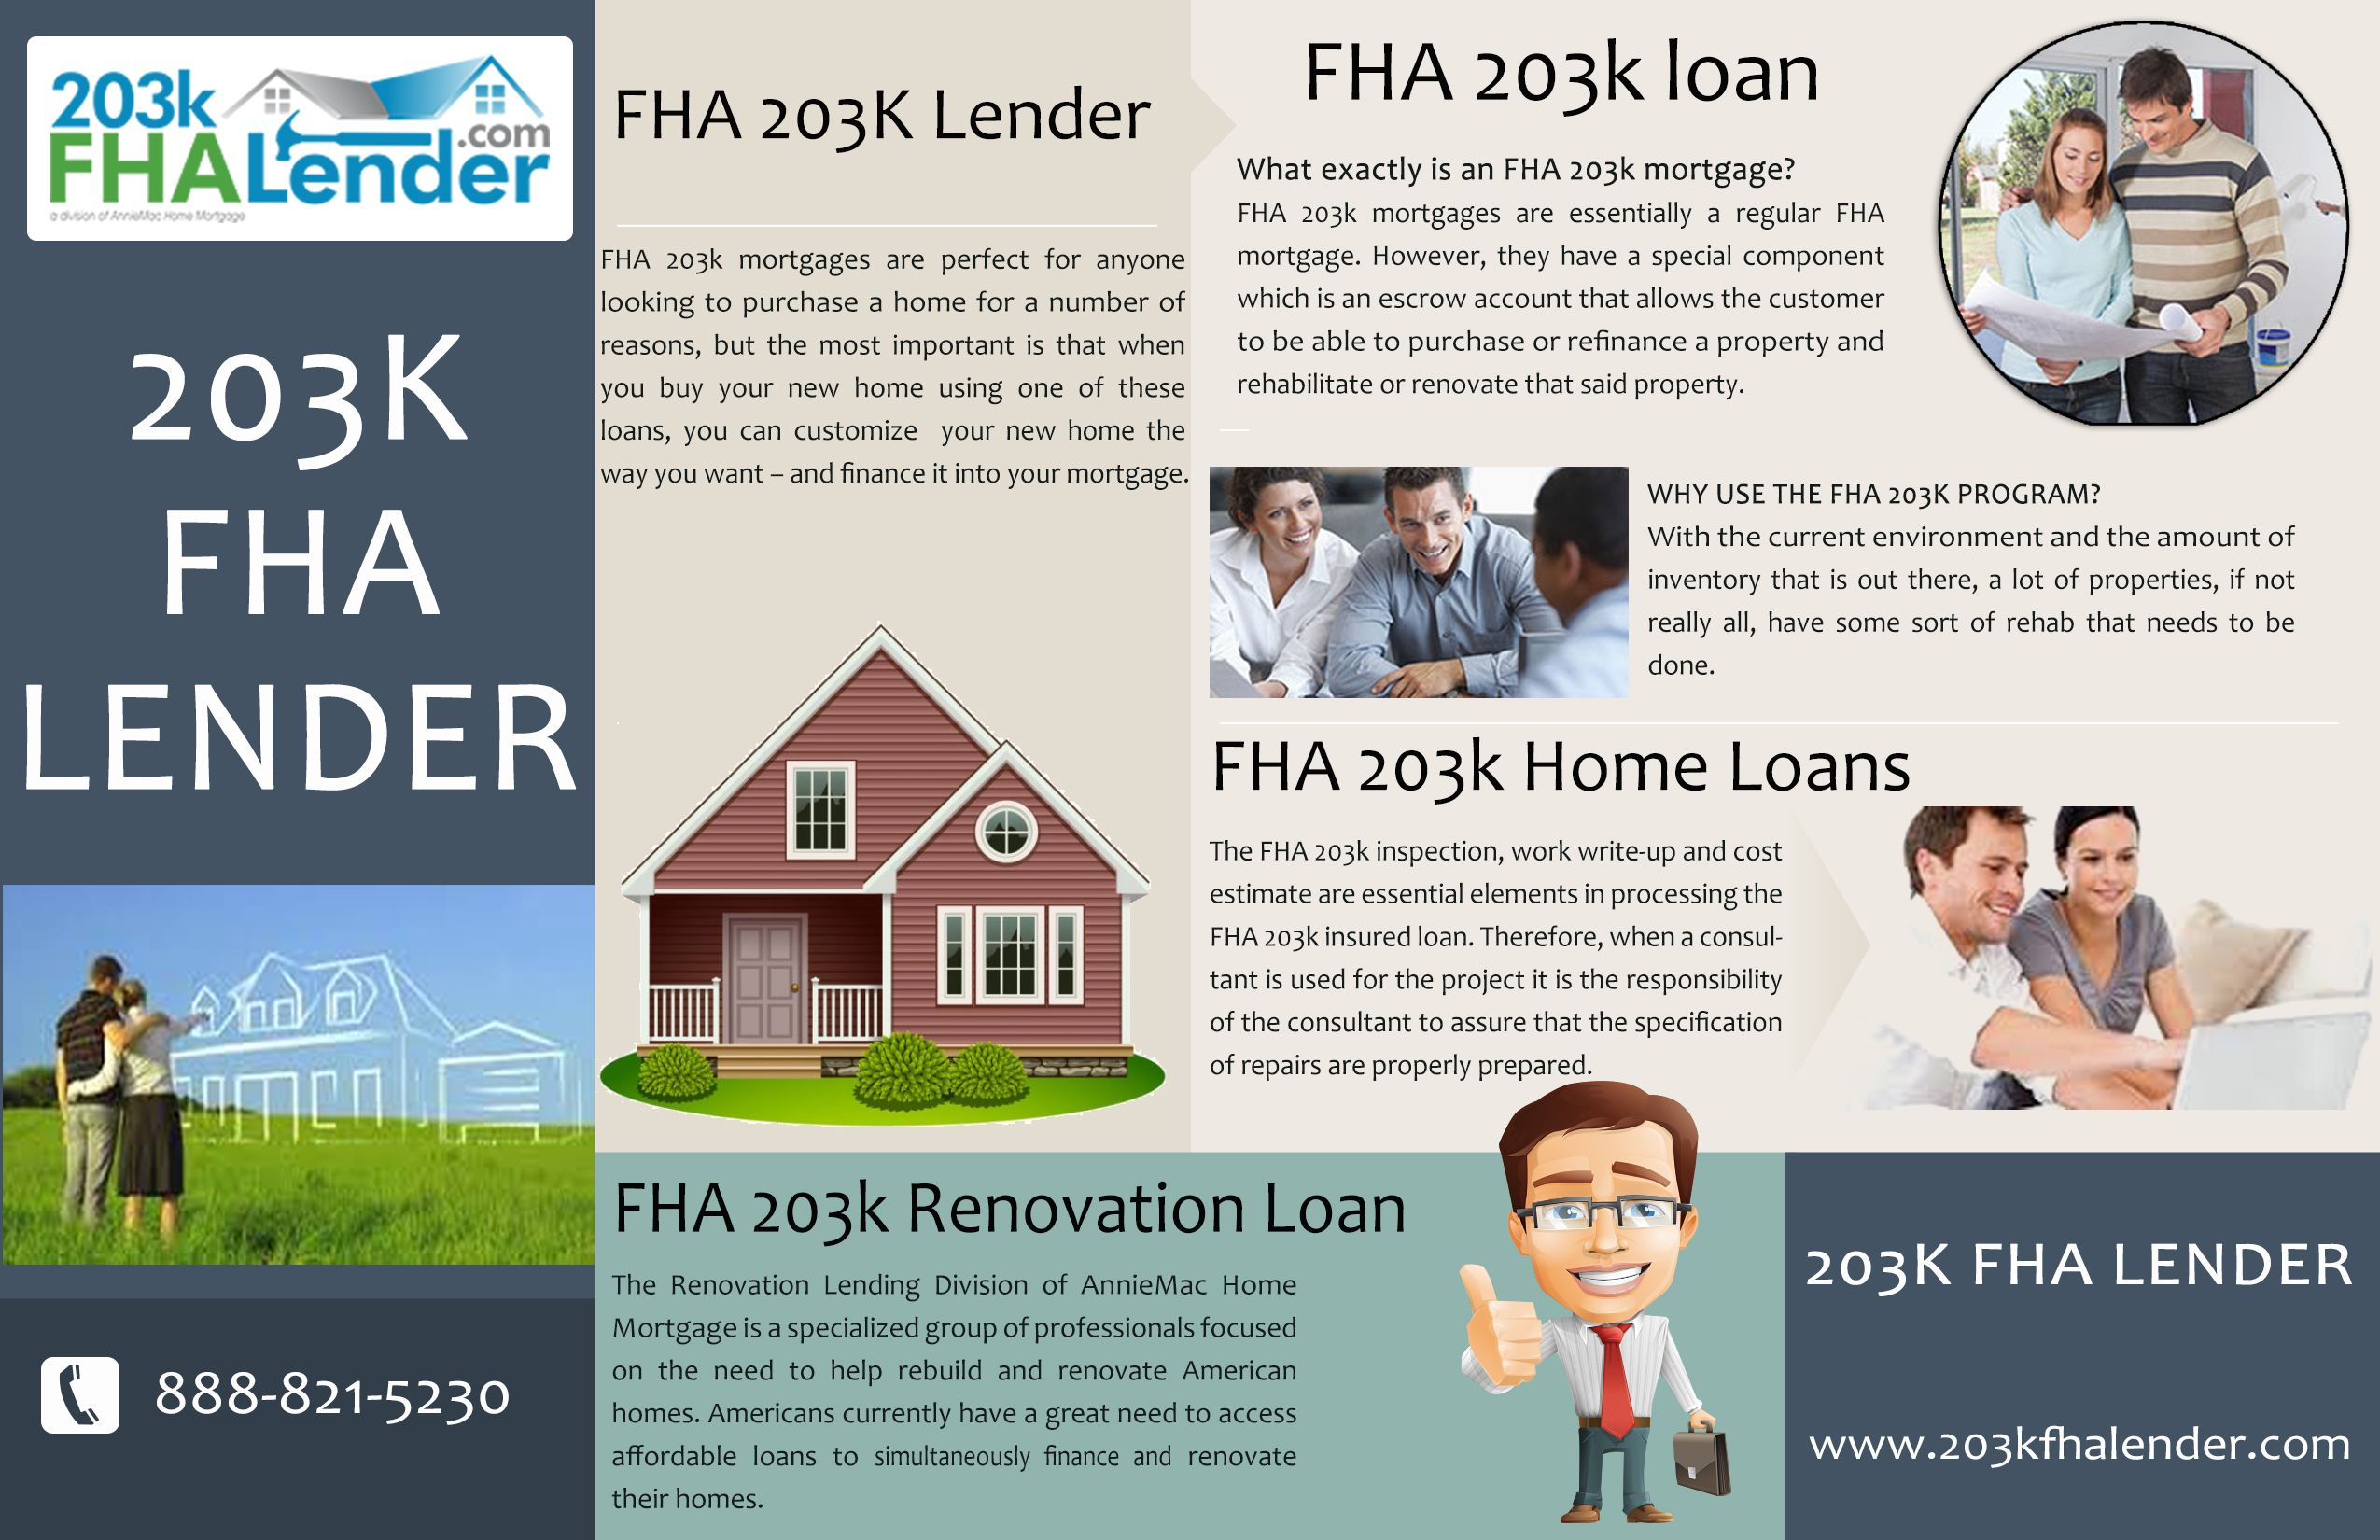 Construction Renovation Loan Calculator Pin By 203k Fha Lender On 203k Fha Lender Home Renovation